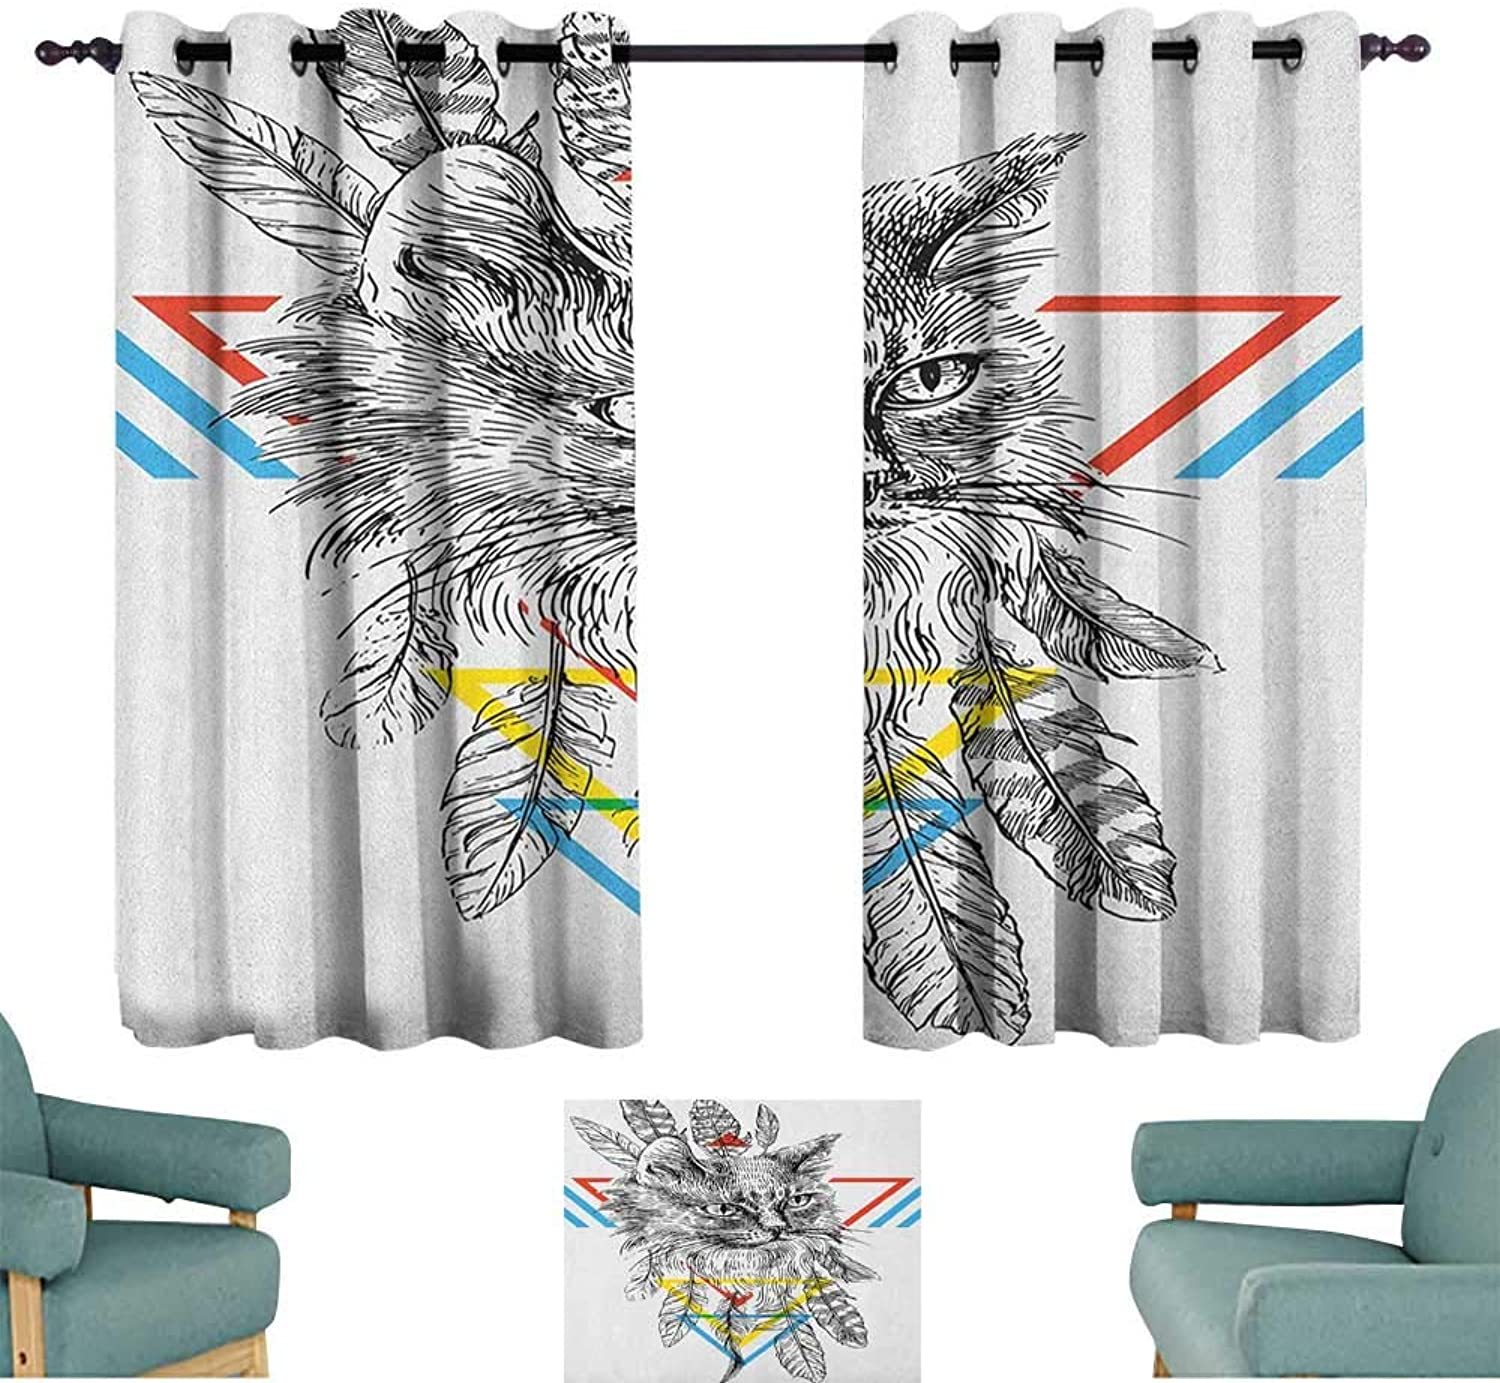 Alisoso Feather,Kids Decor Curtain Ink Sketch Drawing Style Cat Portrait with Geometric Elements Triangles Boho Animal 42 X63  Nursery and Kids Bedroom Curtain